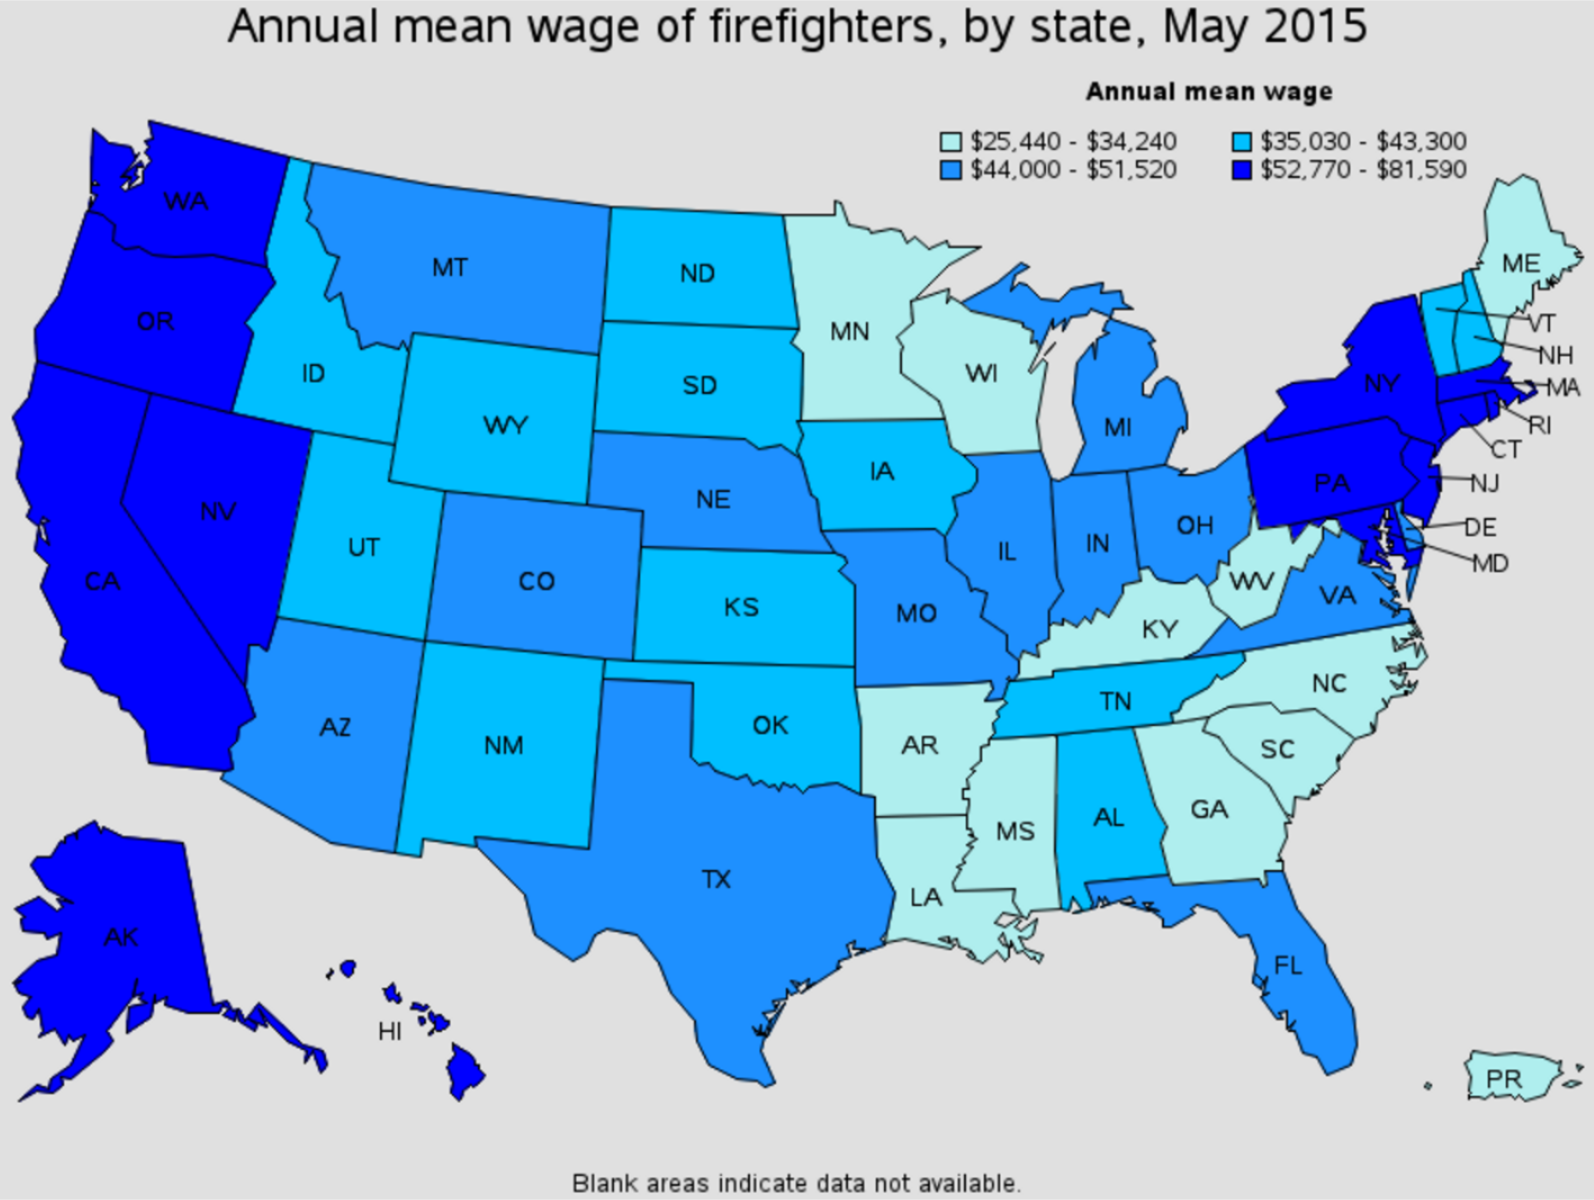 firefighter average salary by state Wilsonville Oregon